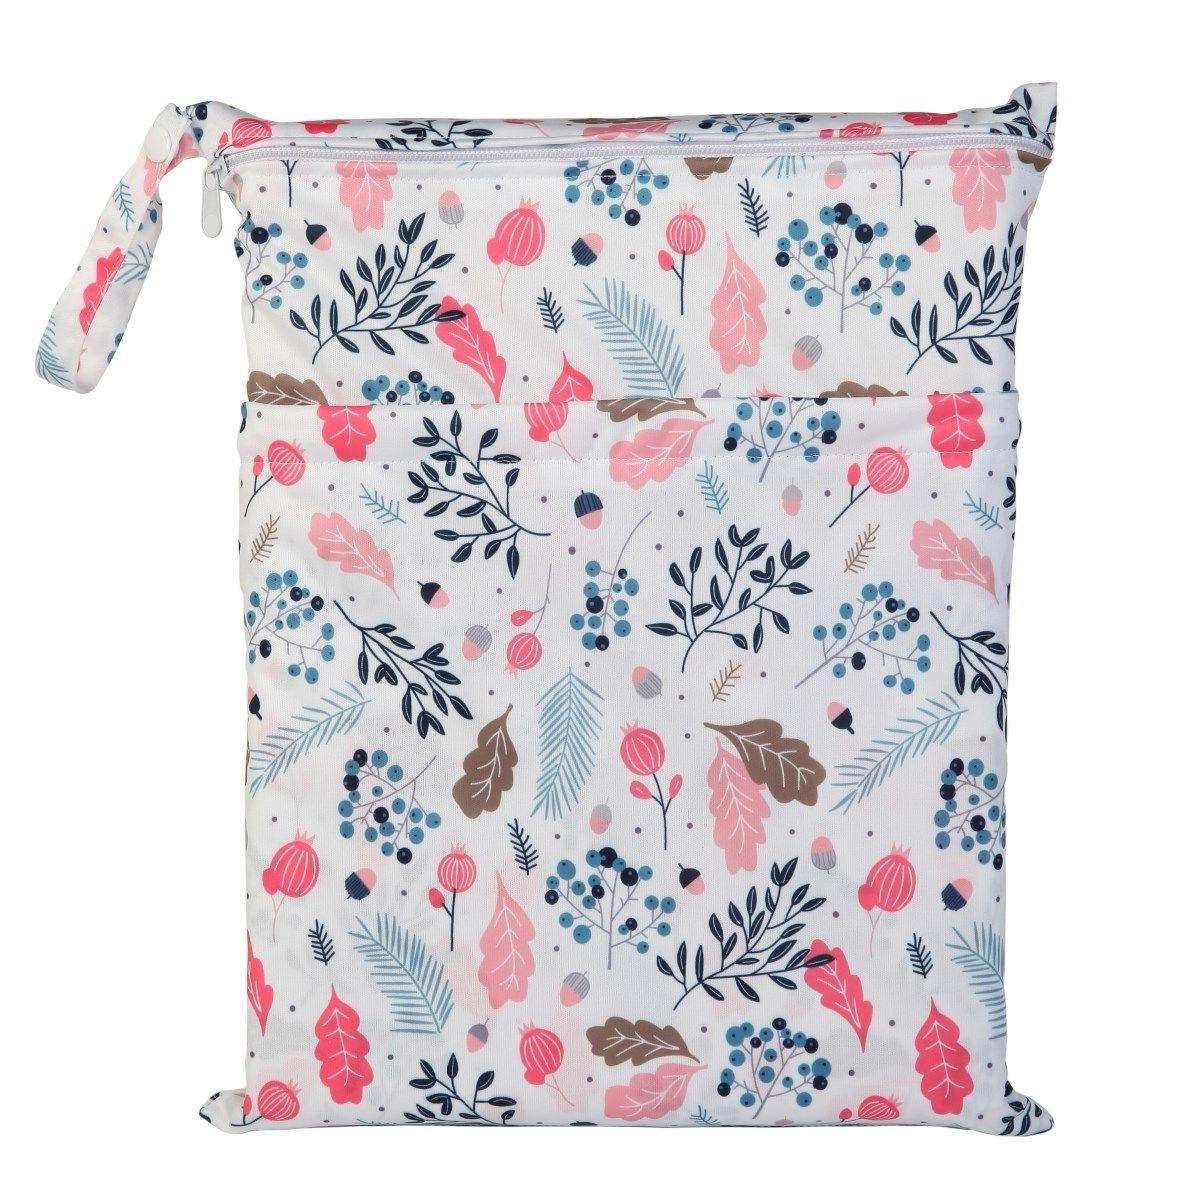 U Pick Dry Bag Baby Cloth Diaper Nappy Bag Reusable With Two